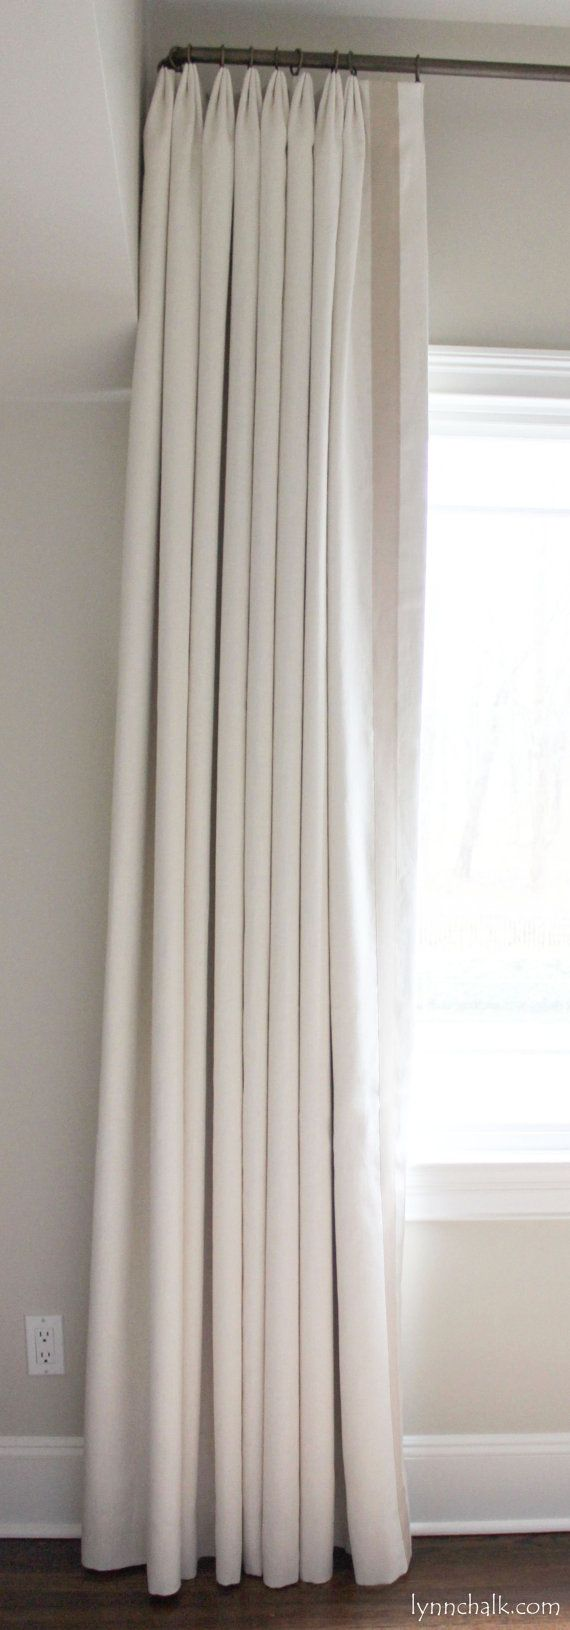 94 best Curtain \u0026 Blinds ~ Styling Ideas images on Pinterest ...